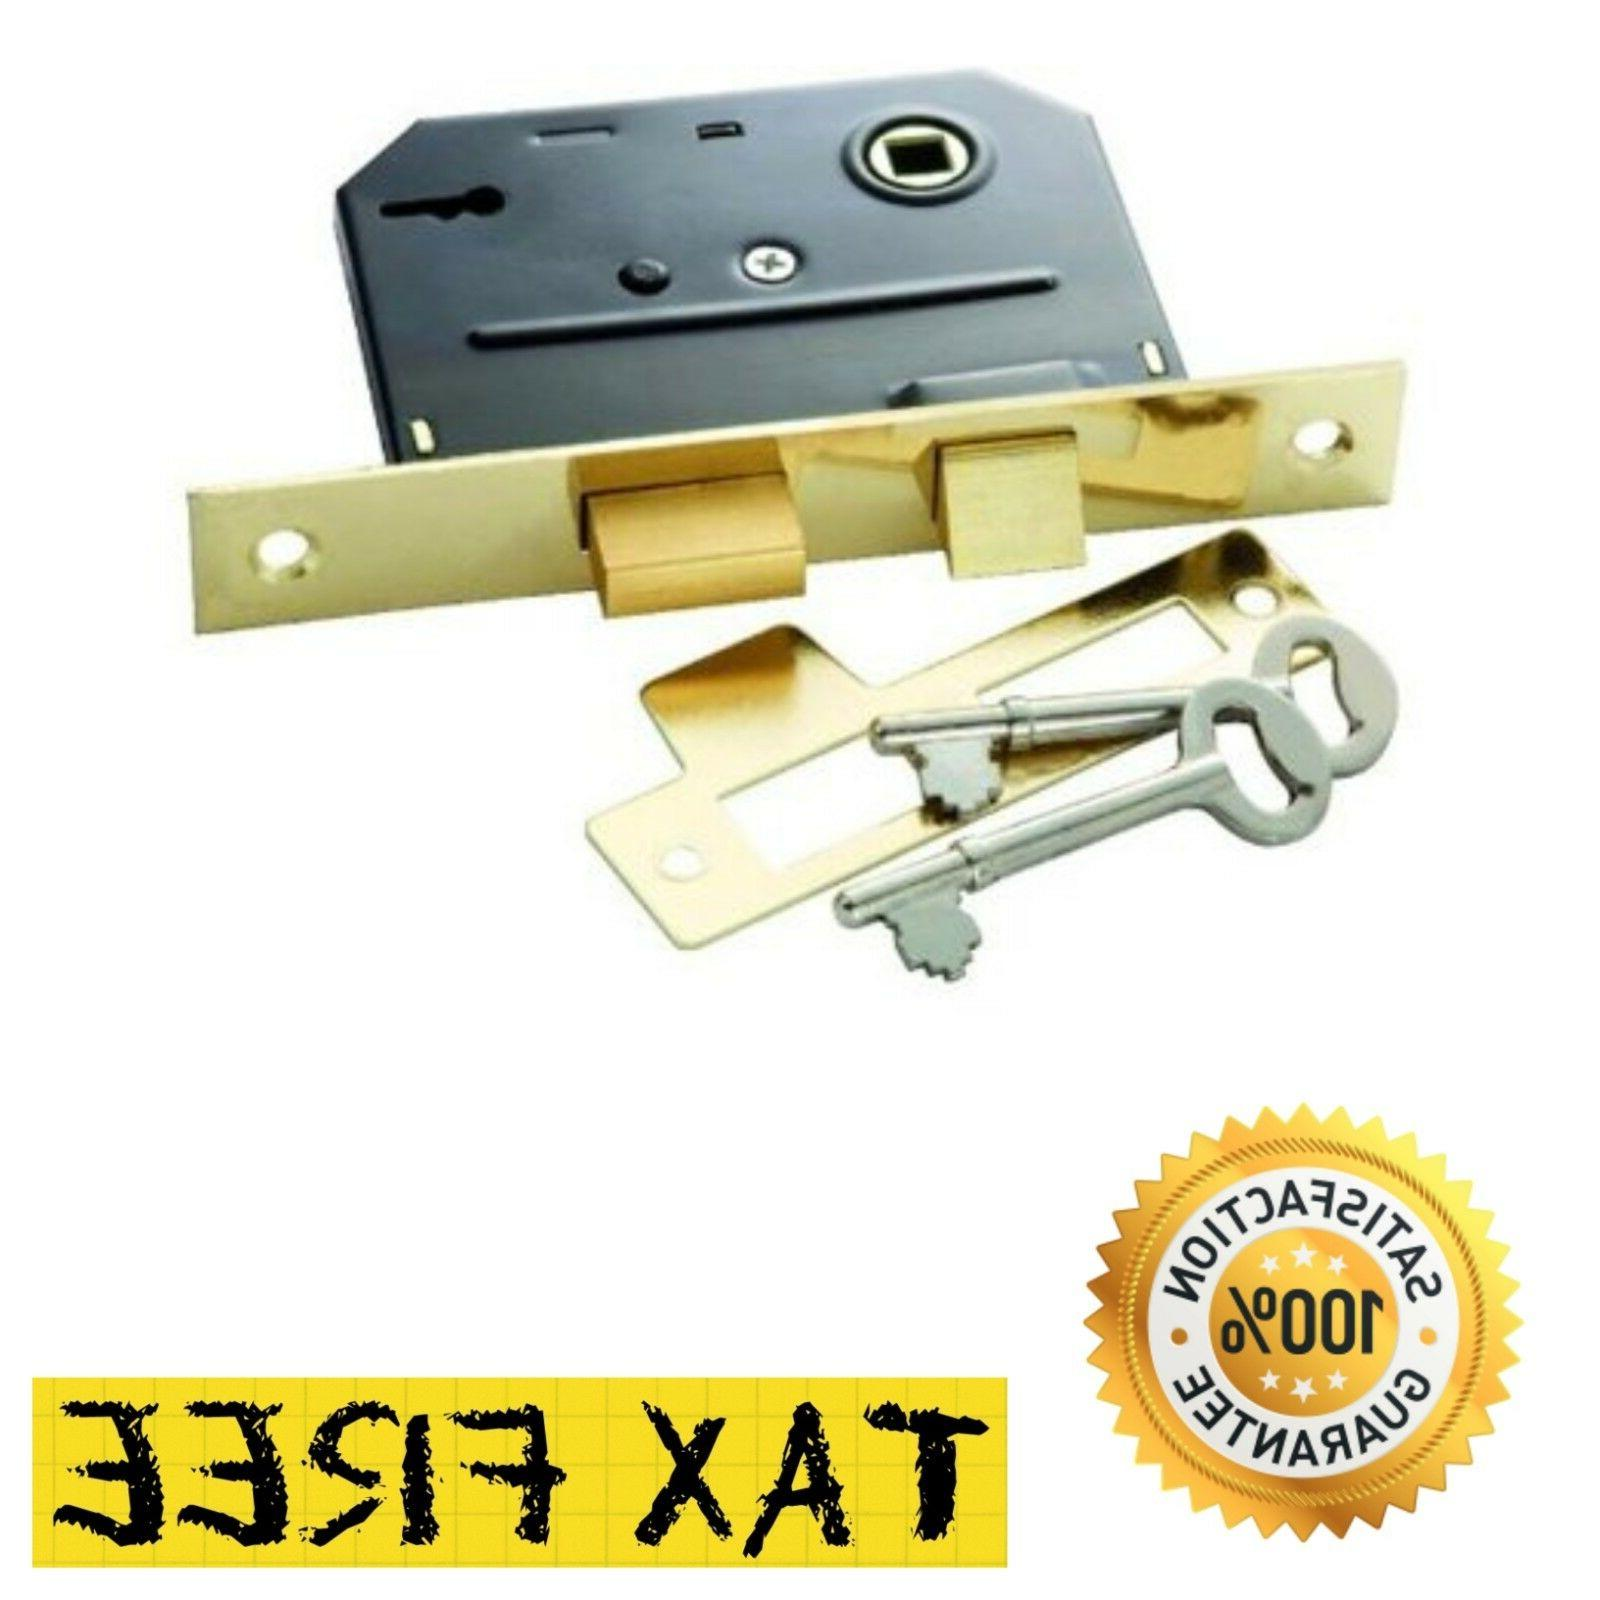 Brass Faceplate Bit Key Mortise Lock Replacement Hardware Do